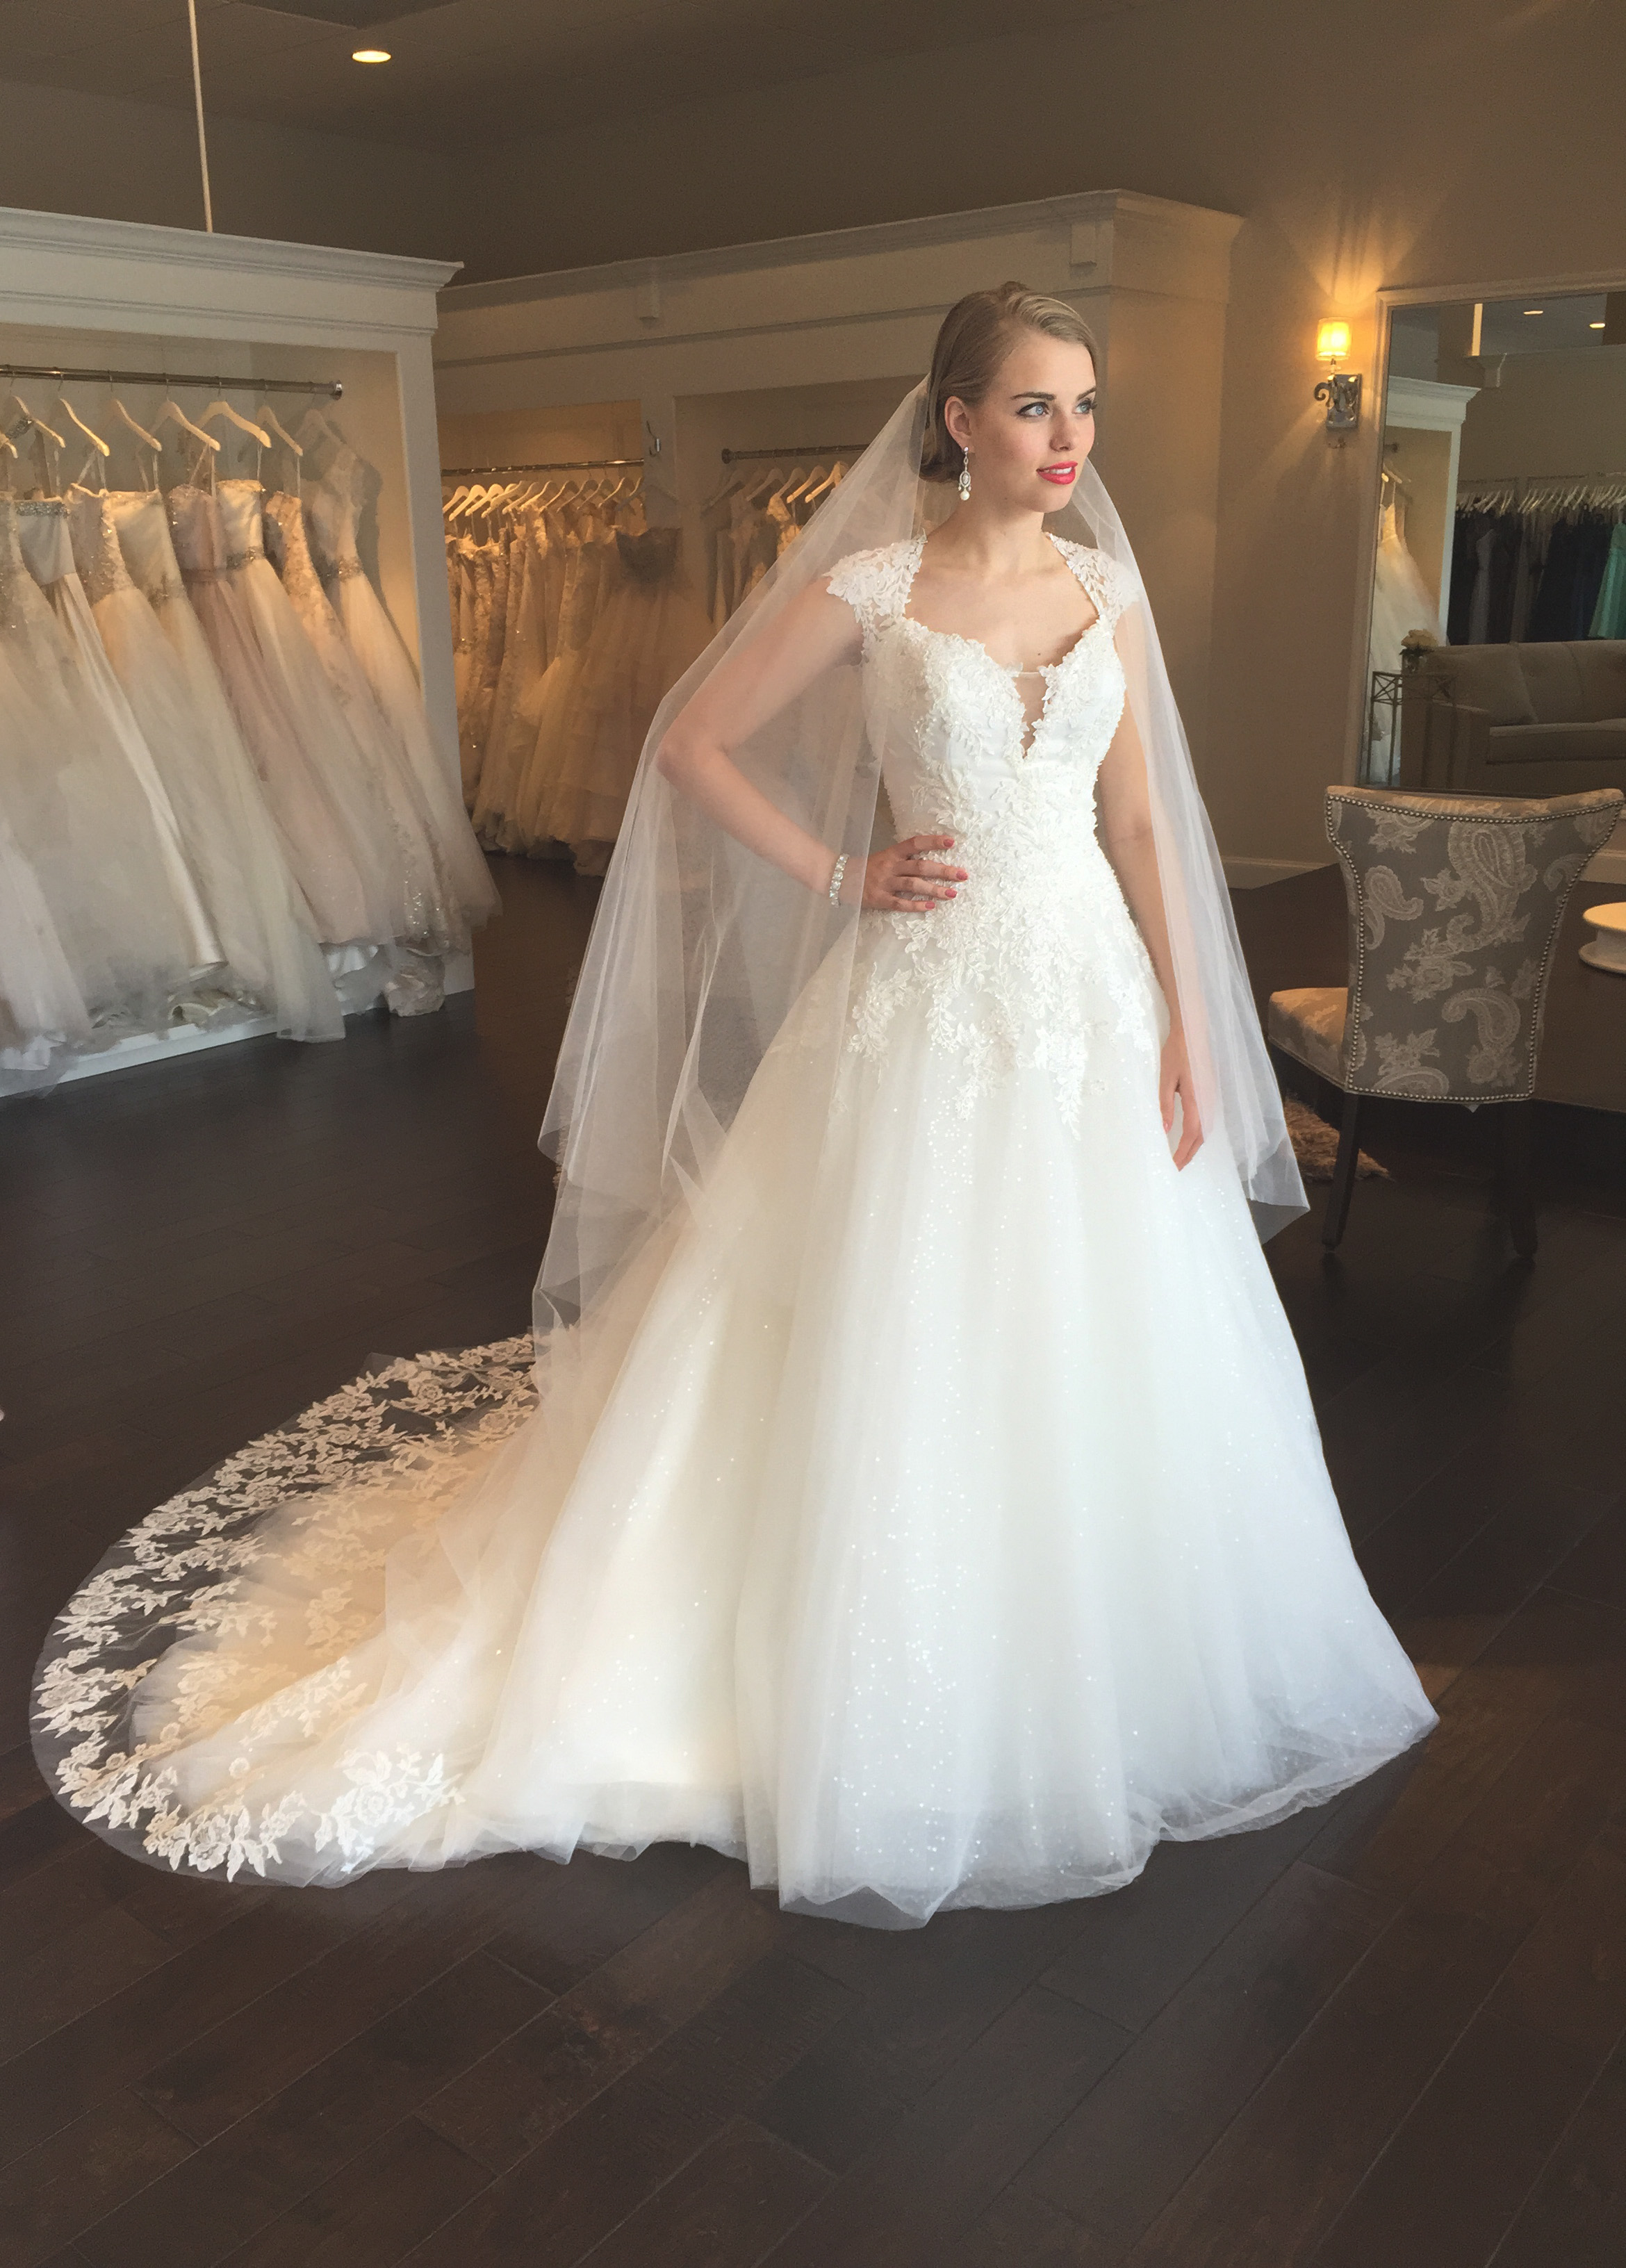 We Love The Beaded And Lace Bodice With Beautiful Cap Sleeves Skirt Has A Layer Of Sequins Underneath That Adds Whole New Level Glam To This Gown